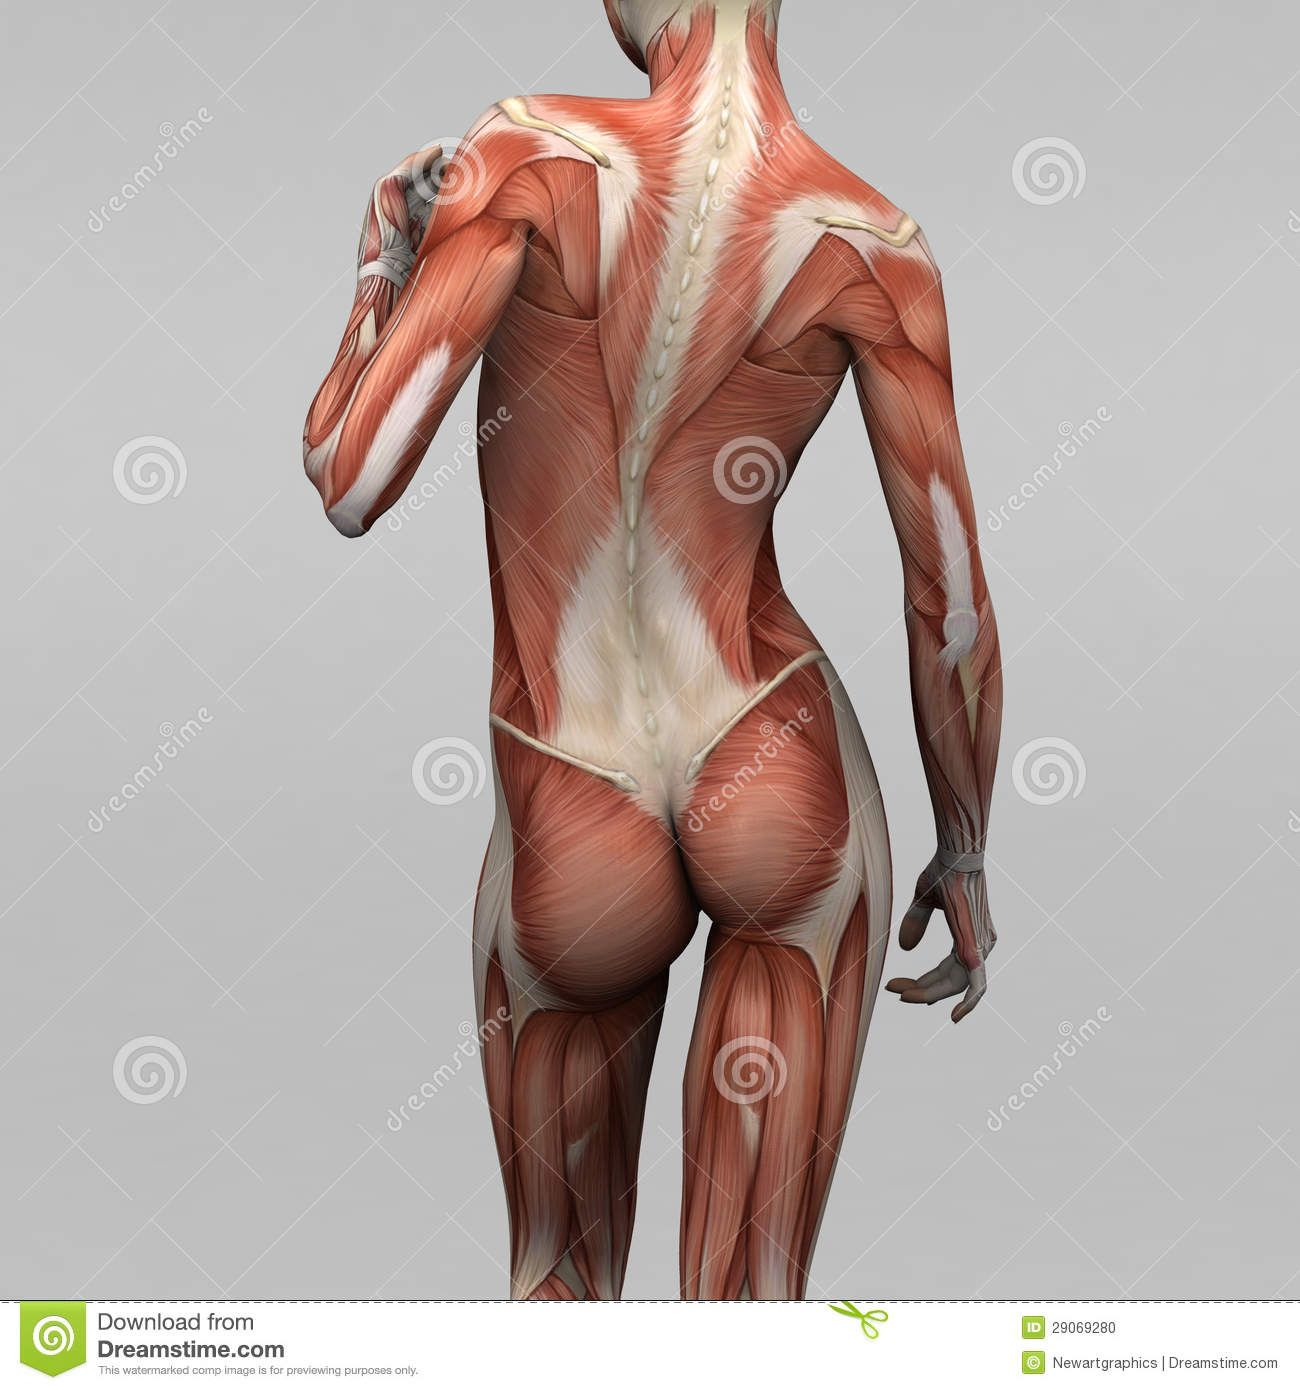 muscle anatomy | stock photo: female human anatomy and muscles, Muscles